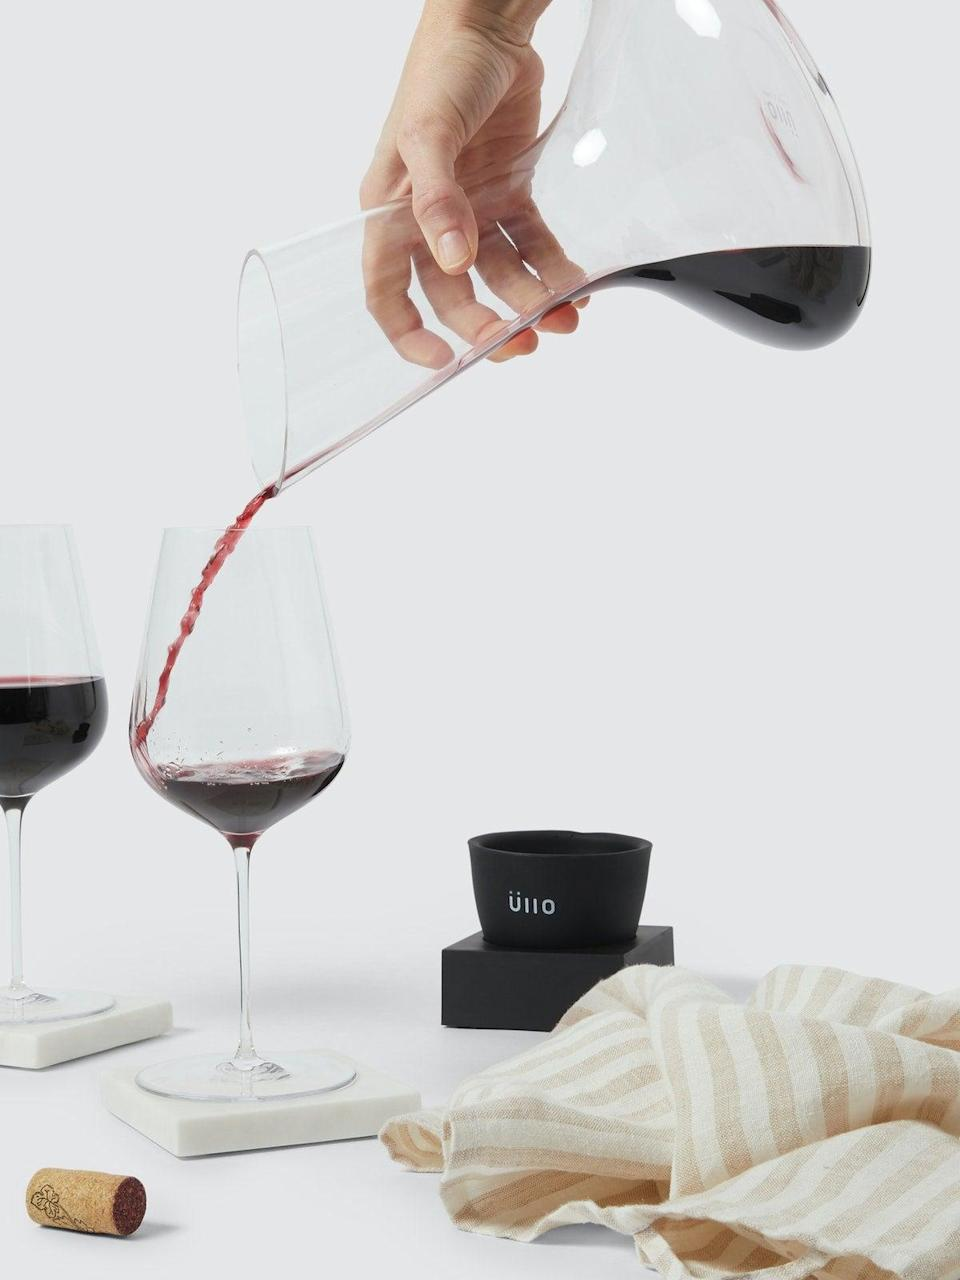 """<h2>Üllo Wine Purifier & Decanter</h2> <br>If she's real fancy-schmancy (and doesn't already own such a premium device), really wow her with Üllo's hand-blown glass decanter that pours a purified glass of sulfate-free, aroma-rich, and opened up wine — like she's dining at a 5-star restaurant, with 5-star sommelier bottle service. <br><br><em>Shop <strong><a href=""""https://www.verishop.com/brand/ullo"""" rel=""""nofollow noopener"""" target=""""_blank"""" data-ylk=""""slk:Üllo"""" class=""""link rapid-noclick-resp"""">Üllo</a></strong></em><br><br><strong>Üllo</strong> Wine Purifier & Decanter, $, available at <a href=""""https://go.skimresources.com/?id=30283X879131&url=https%3A%2F%2Fwww.verishop.com%2Fullo%2Fdecanter%2Fwine-purifier-decanter%2Fp4361131098135"""" rel=""""nofollow noopener"""" target=""""_blank"""" data-ylk=""""slk:Verishop"""" class=""""link rapid-noclick-resp"""">Verishop</a><br><br><br>"""